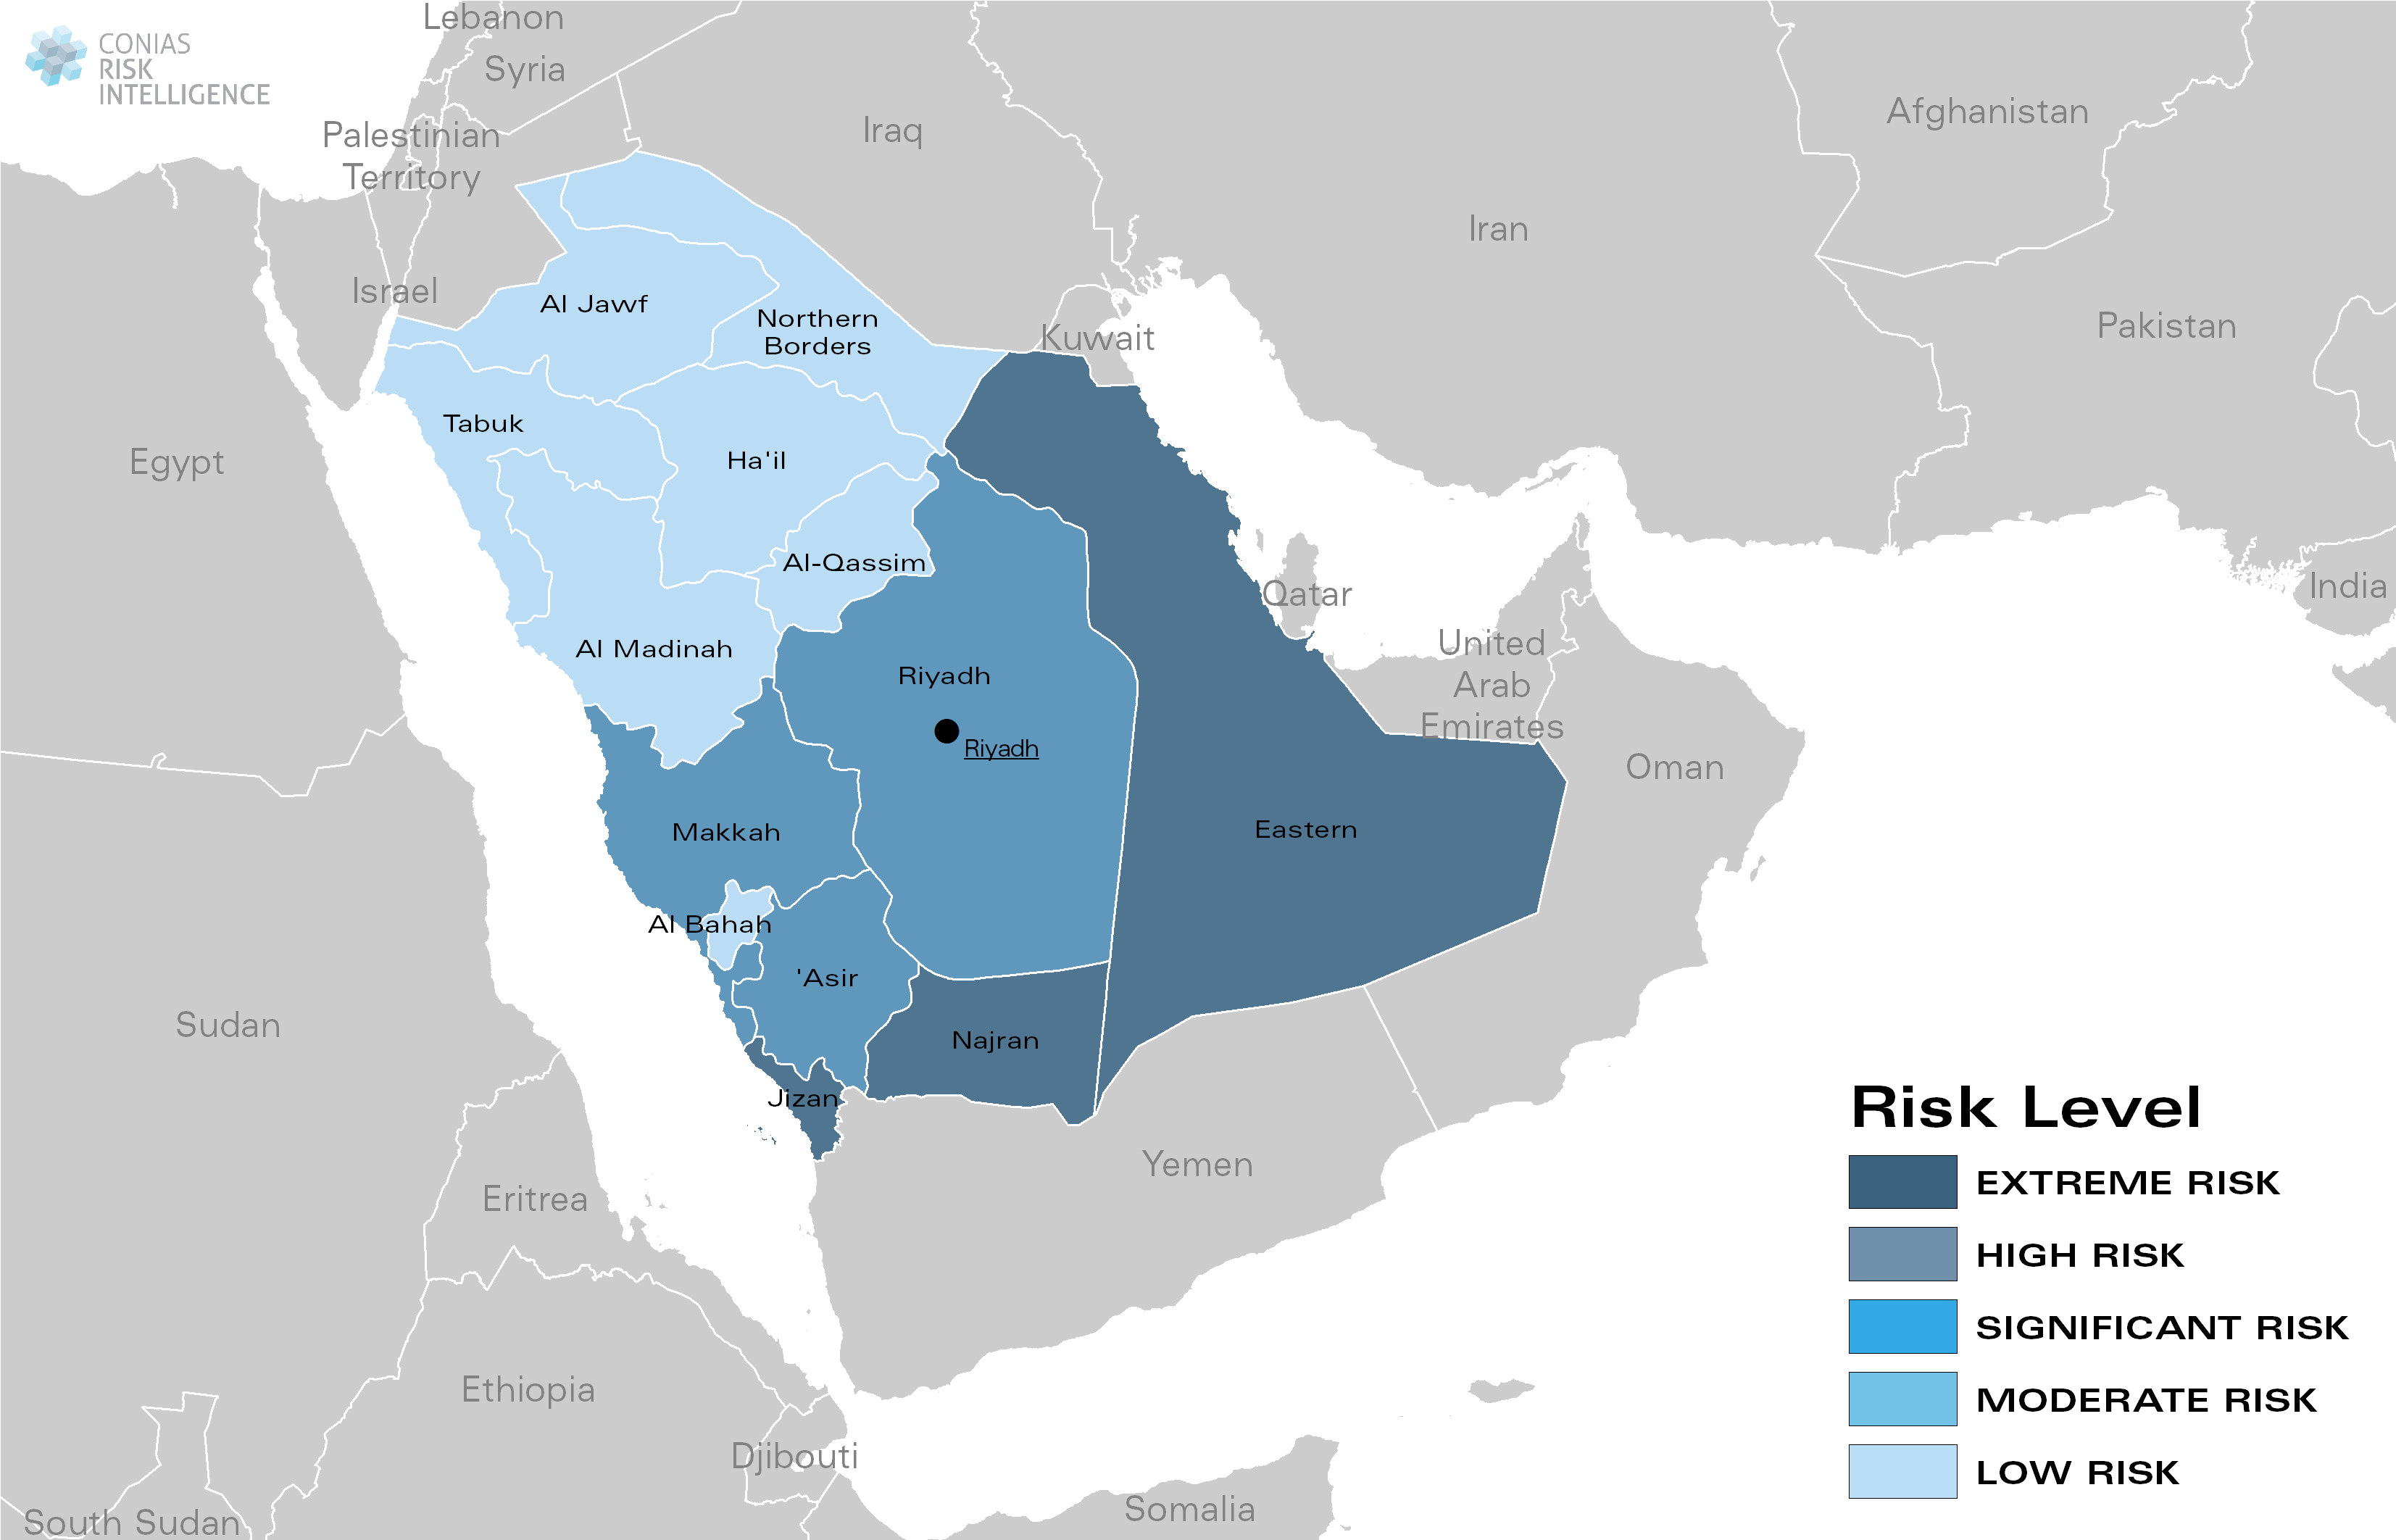 CONIAS Political Risk Maps Saudi-Arabien